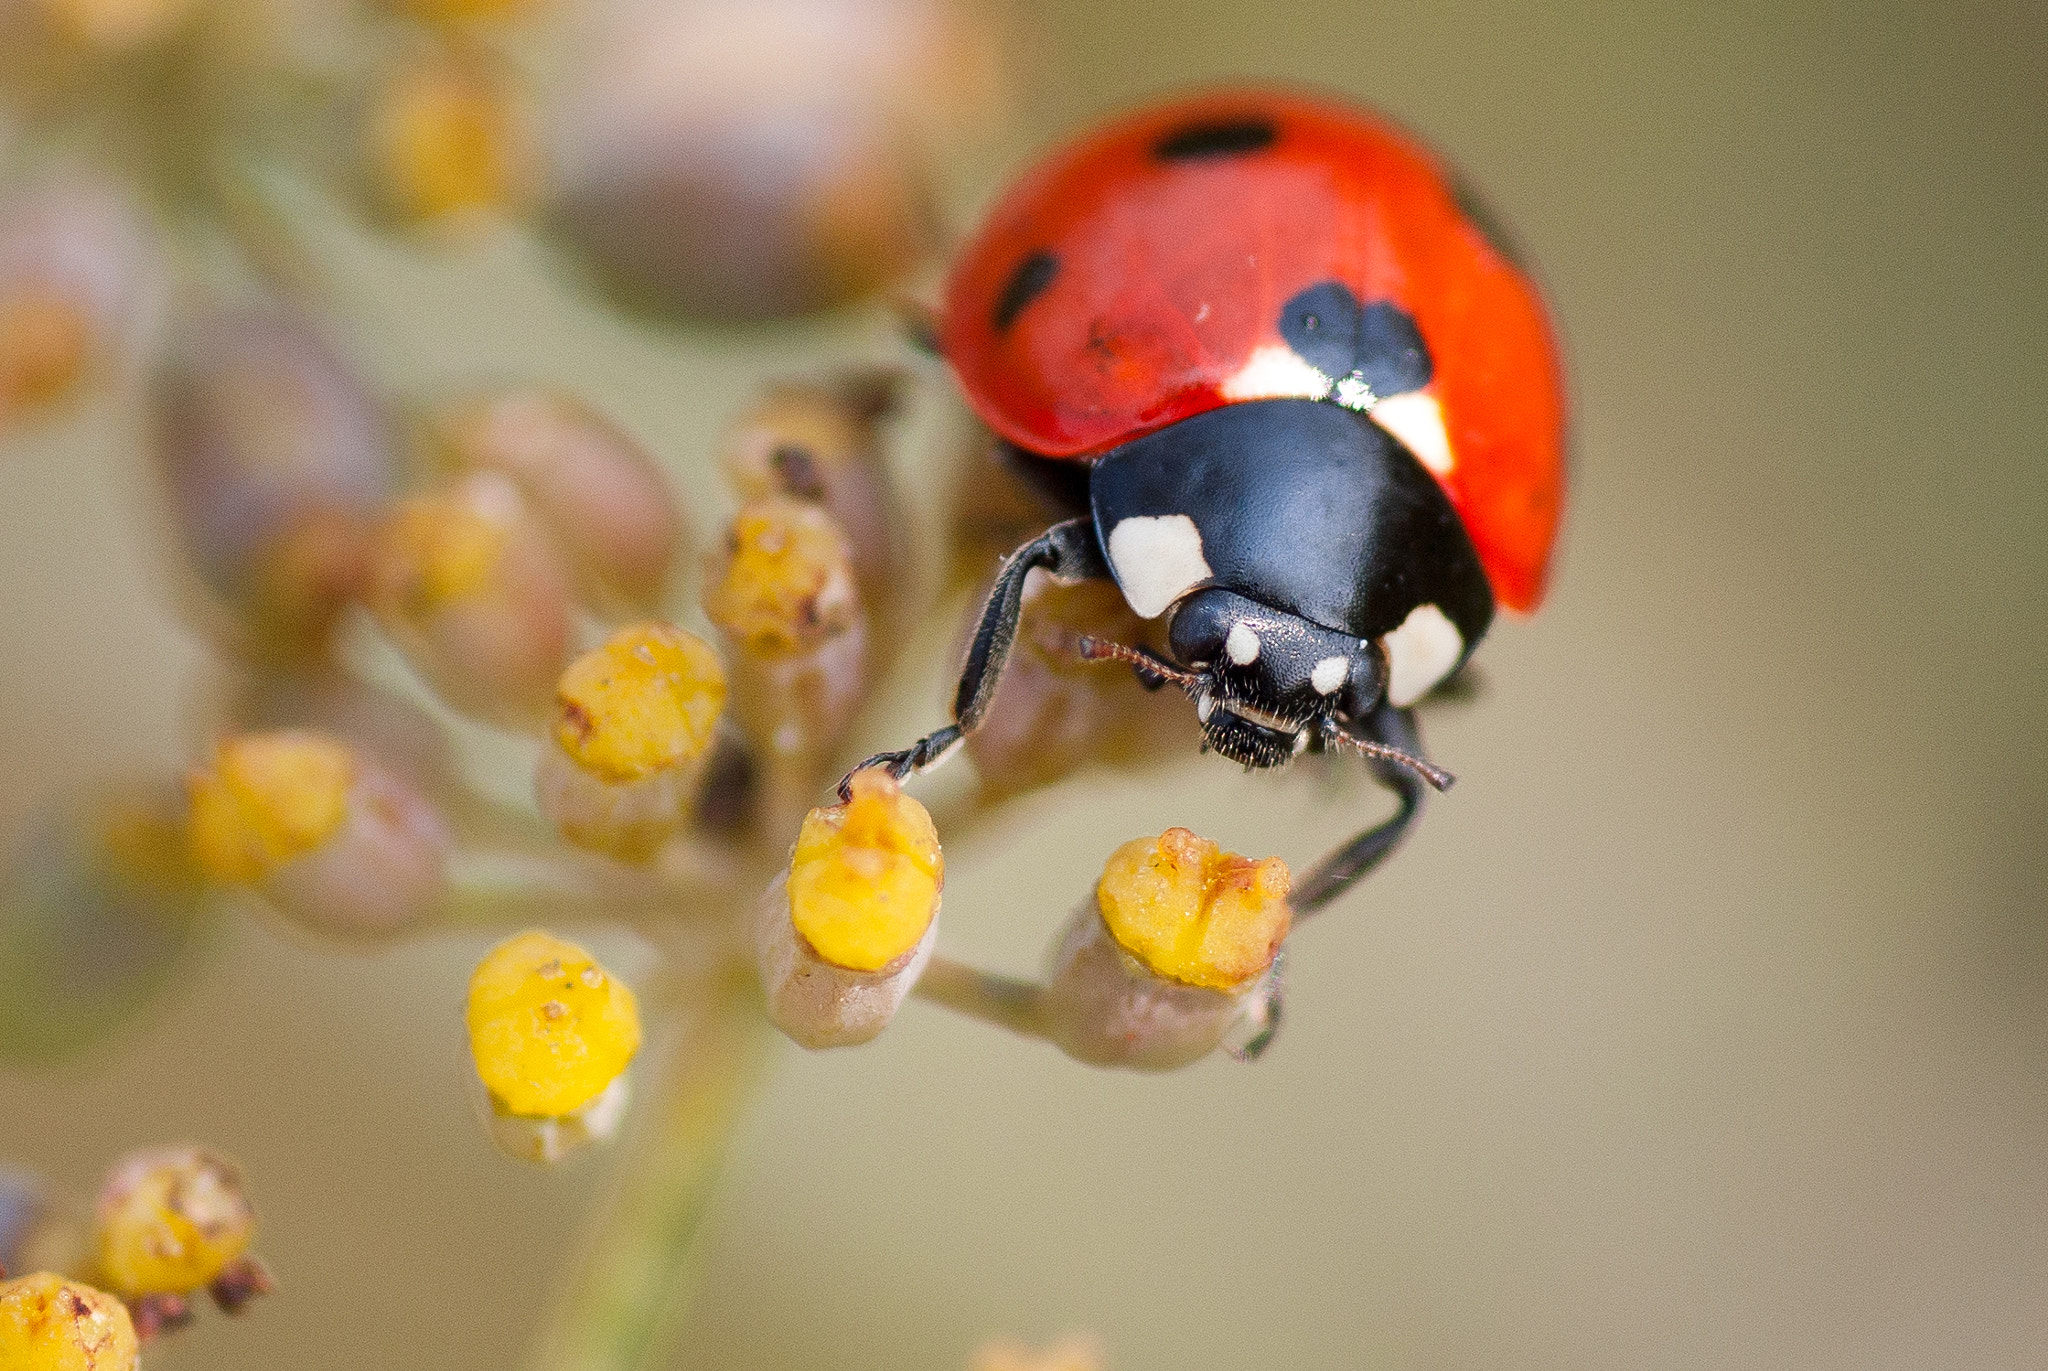 Photograph Ladybug by Tjeerd Collette on 500px